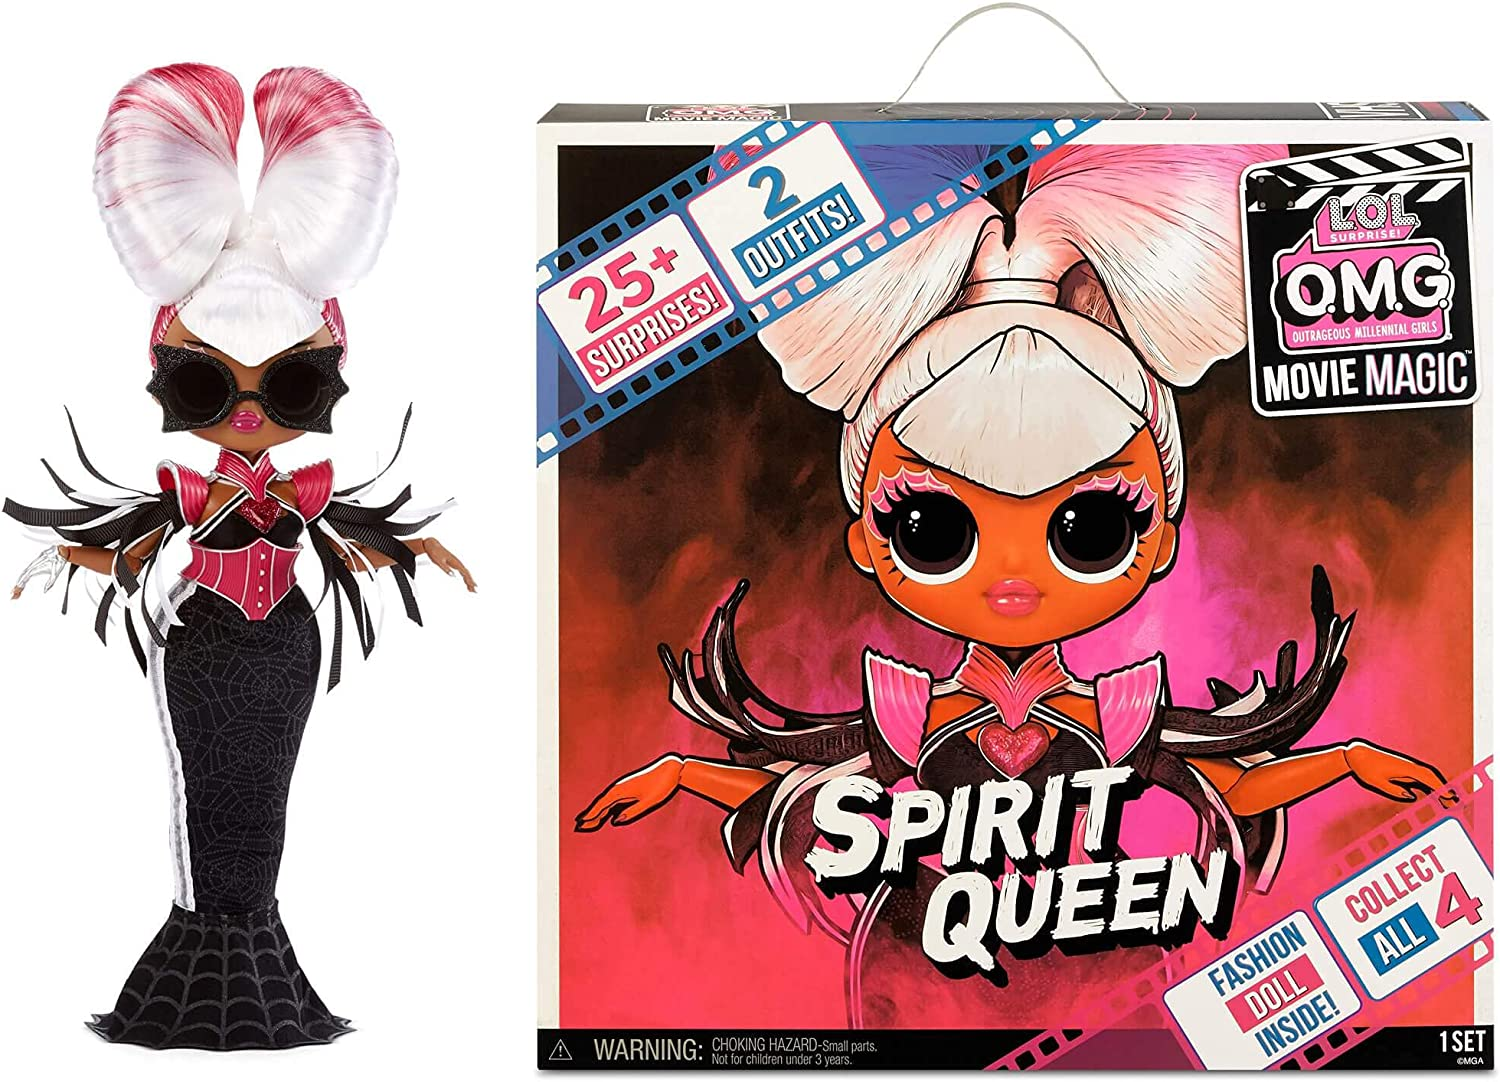 LOL Surprise OMG Movie Magic Spirit Queen Fashion Doll with 25 Surprises Including 2 Fashion Outfits, 3D Glasses, Movie Accessories and Reusable Playset – Great Gift for Girls Ages 4+